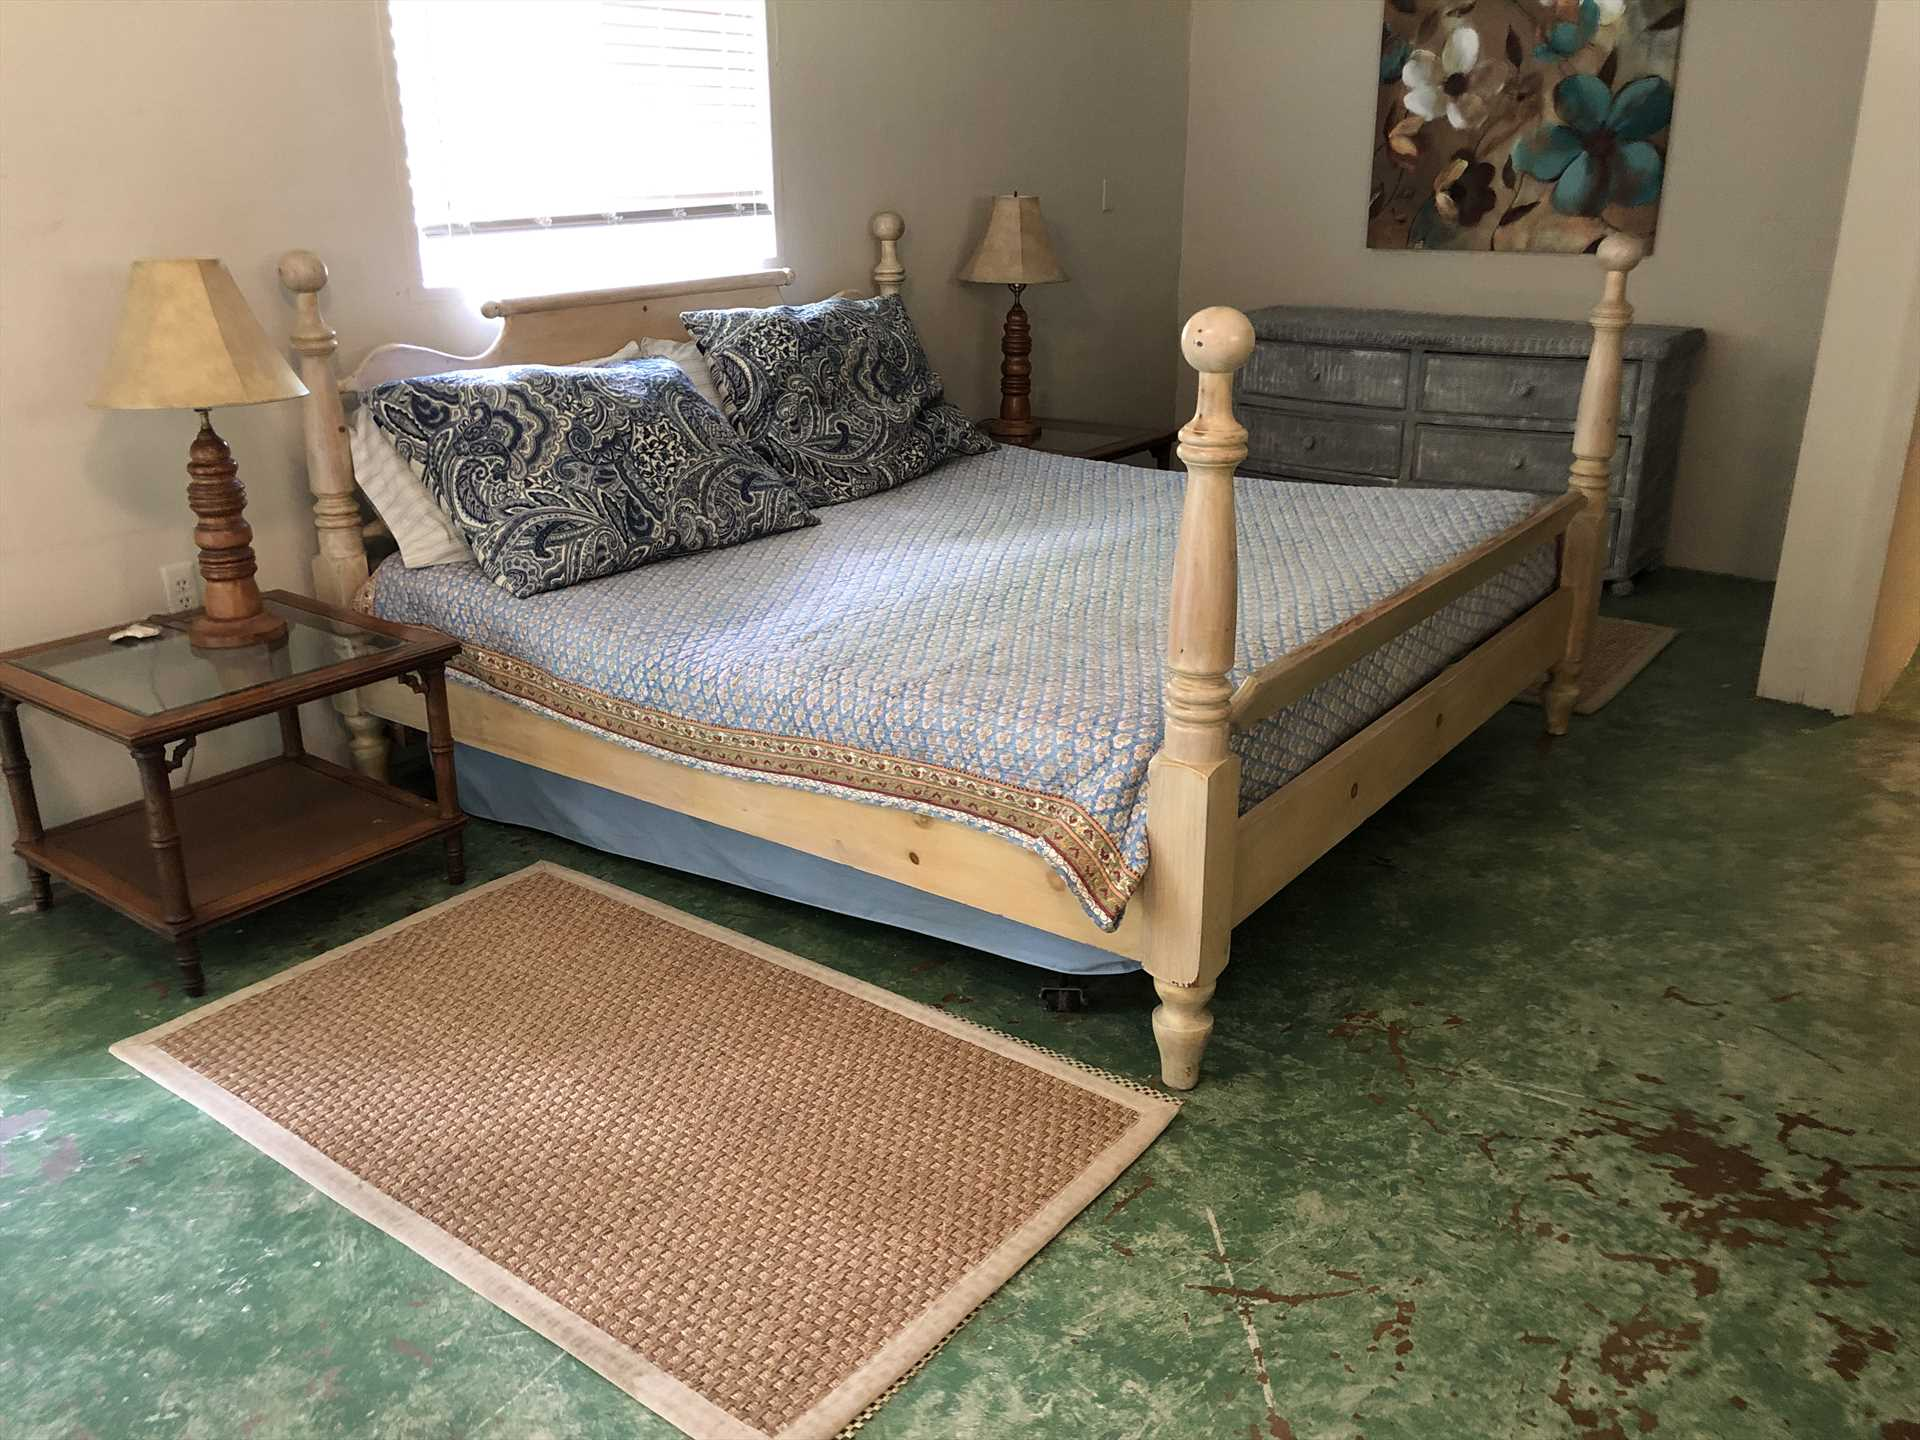 The master bedroom includes not only a great big king-sized bed, but a couch and intimate dining area, as well. It also has its own bathroom!